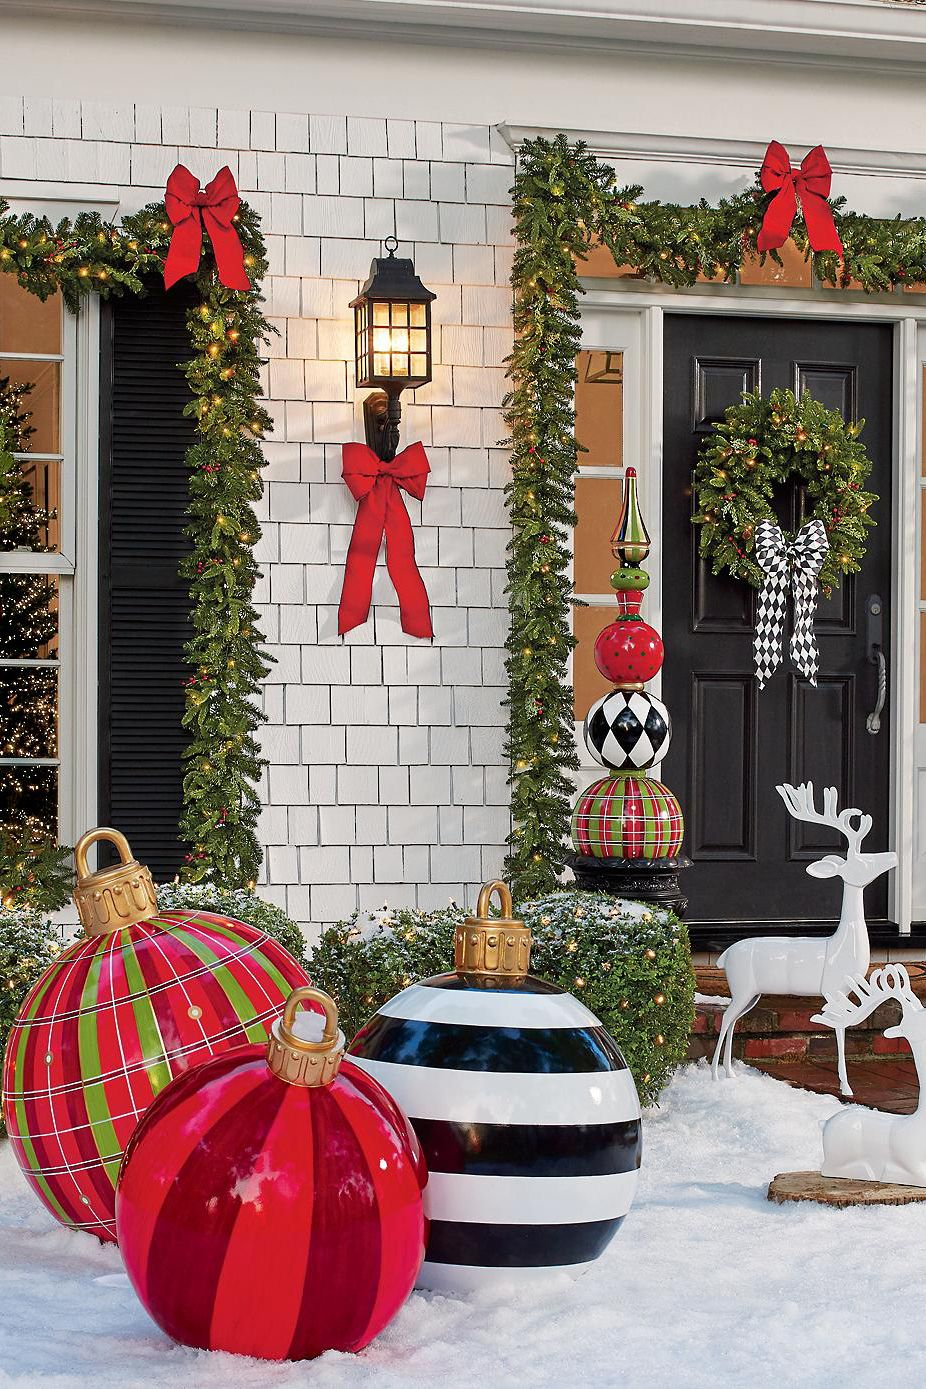 Delightful Large Outdoor Christmas Ornaments   Oversized Yard Holiday Ornaments